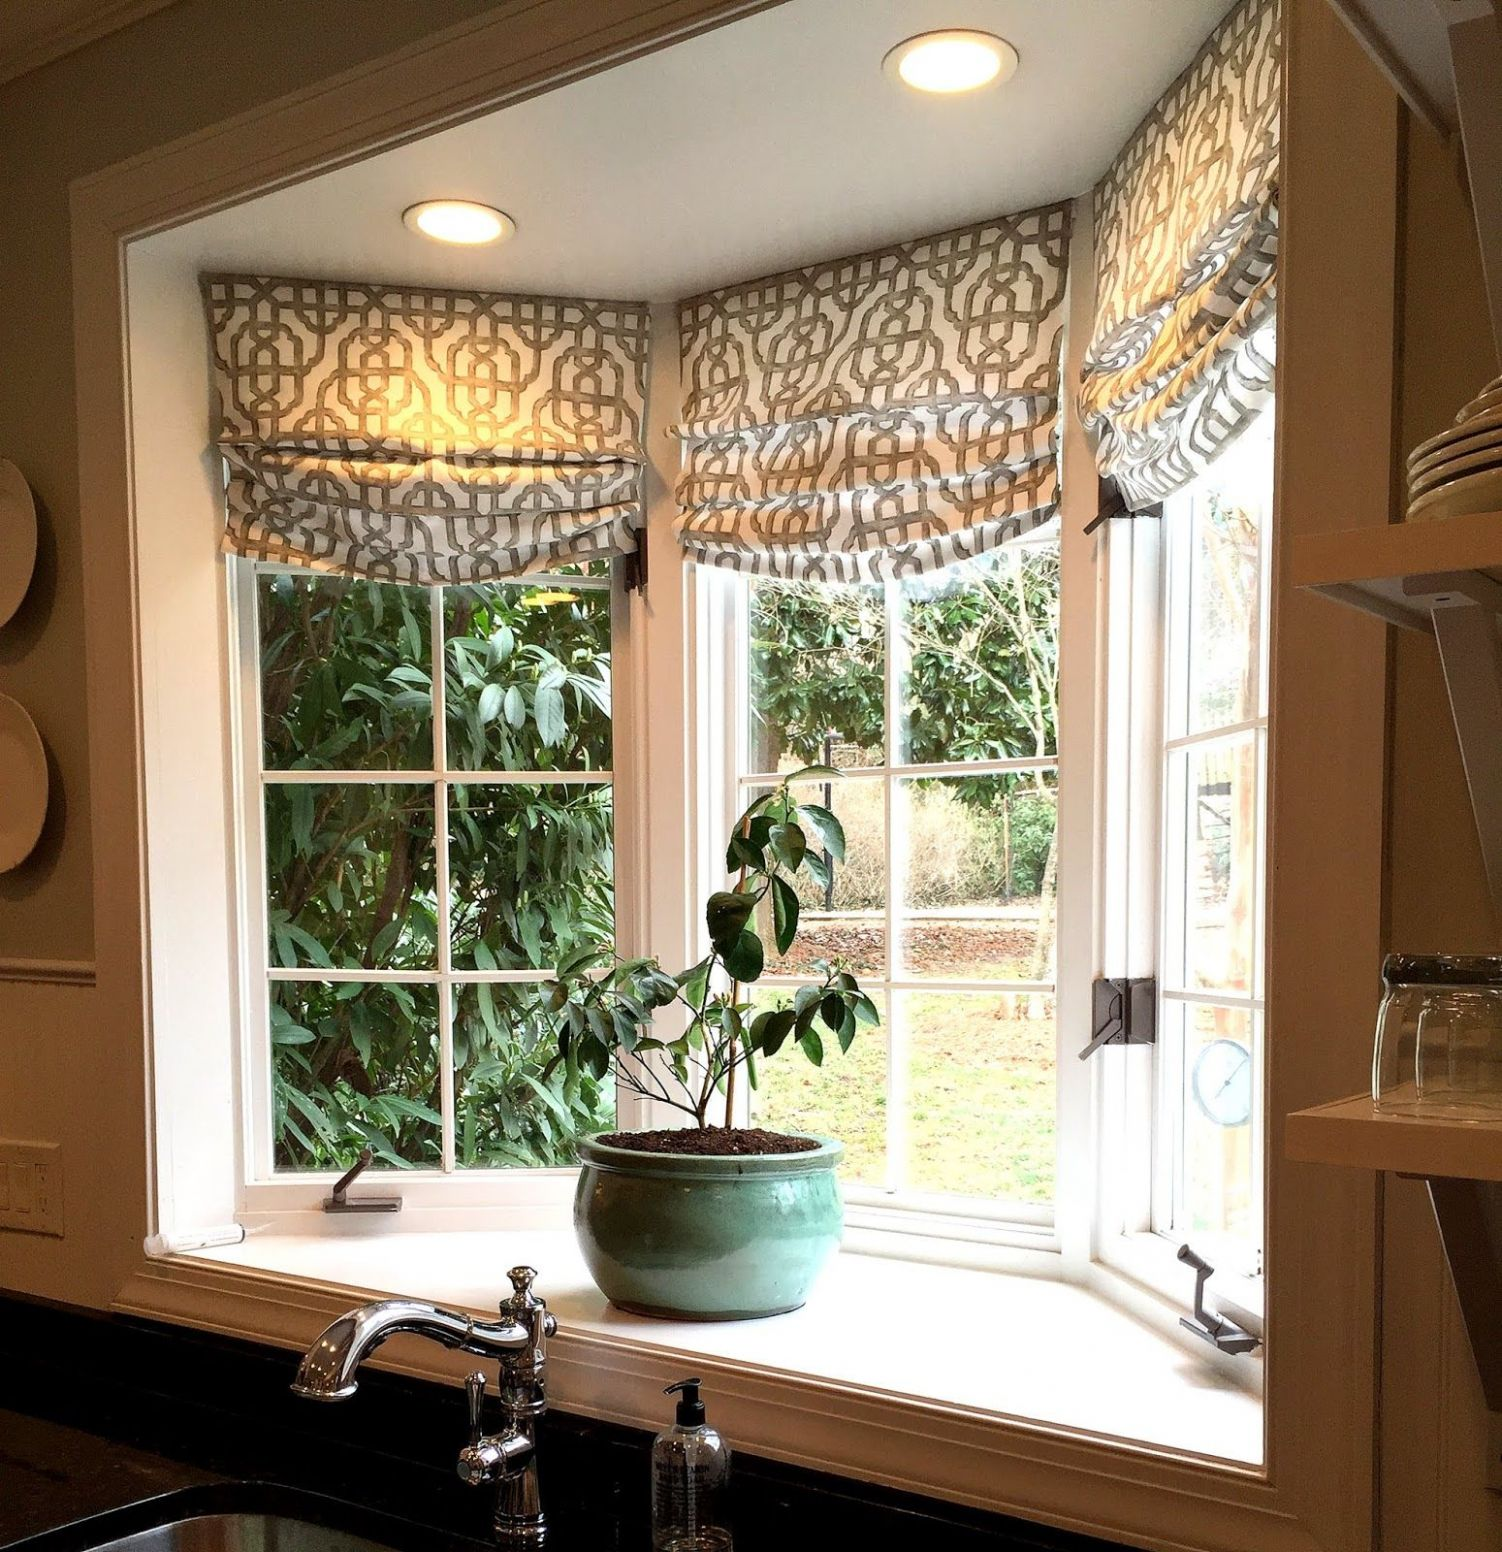 A Few Kitchen Updates | Bay window decor, Kitchen window ..